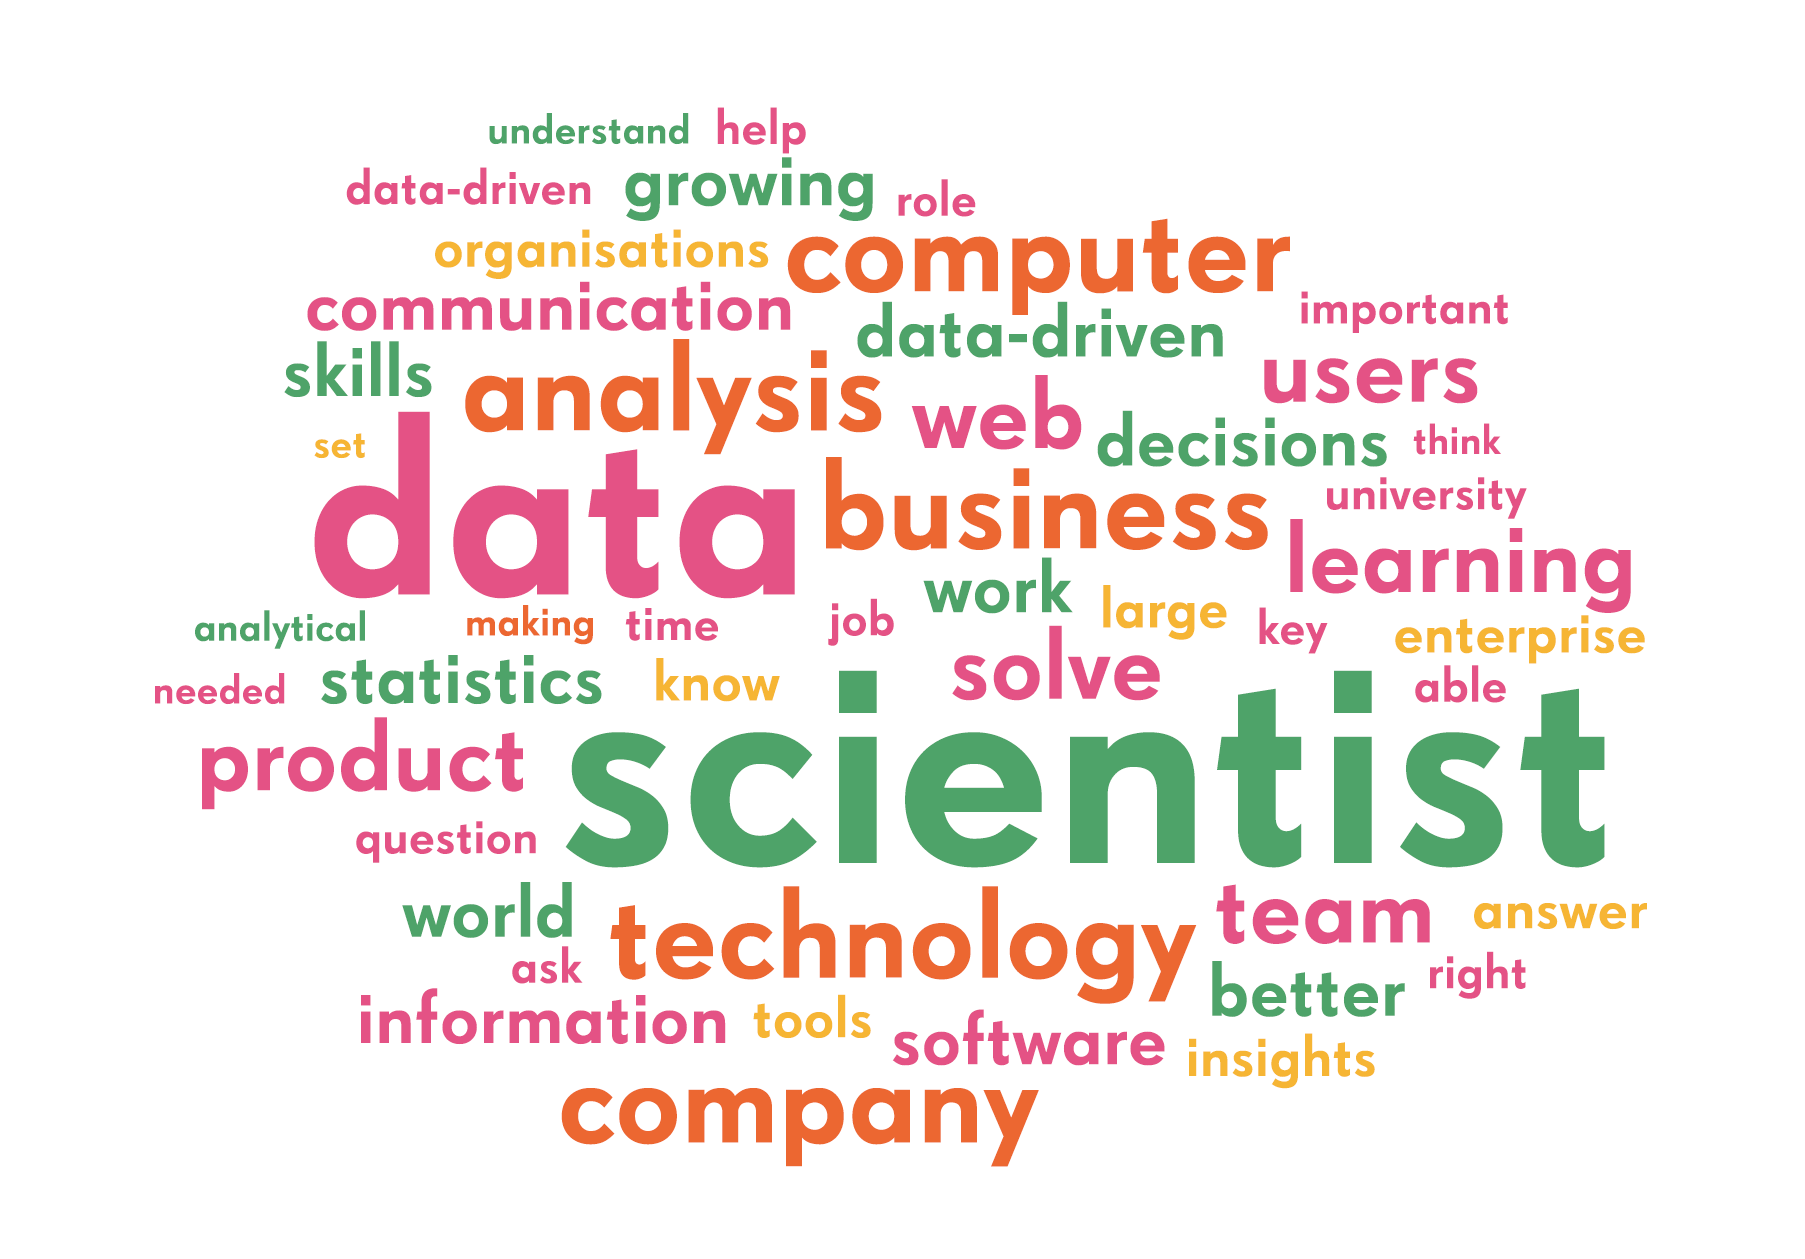 As machine learning evolves, we need to update the definition of 'data scientist'